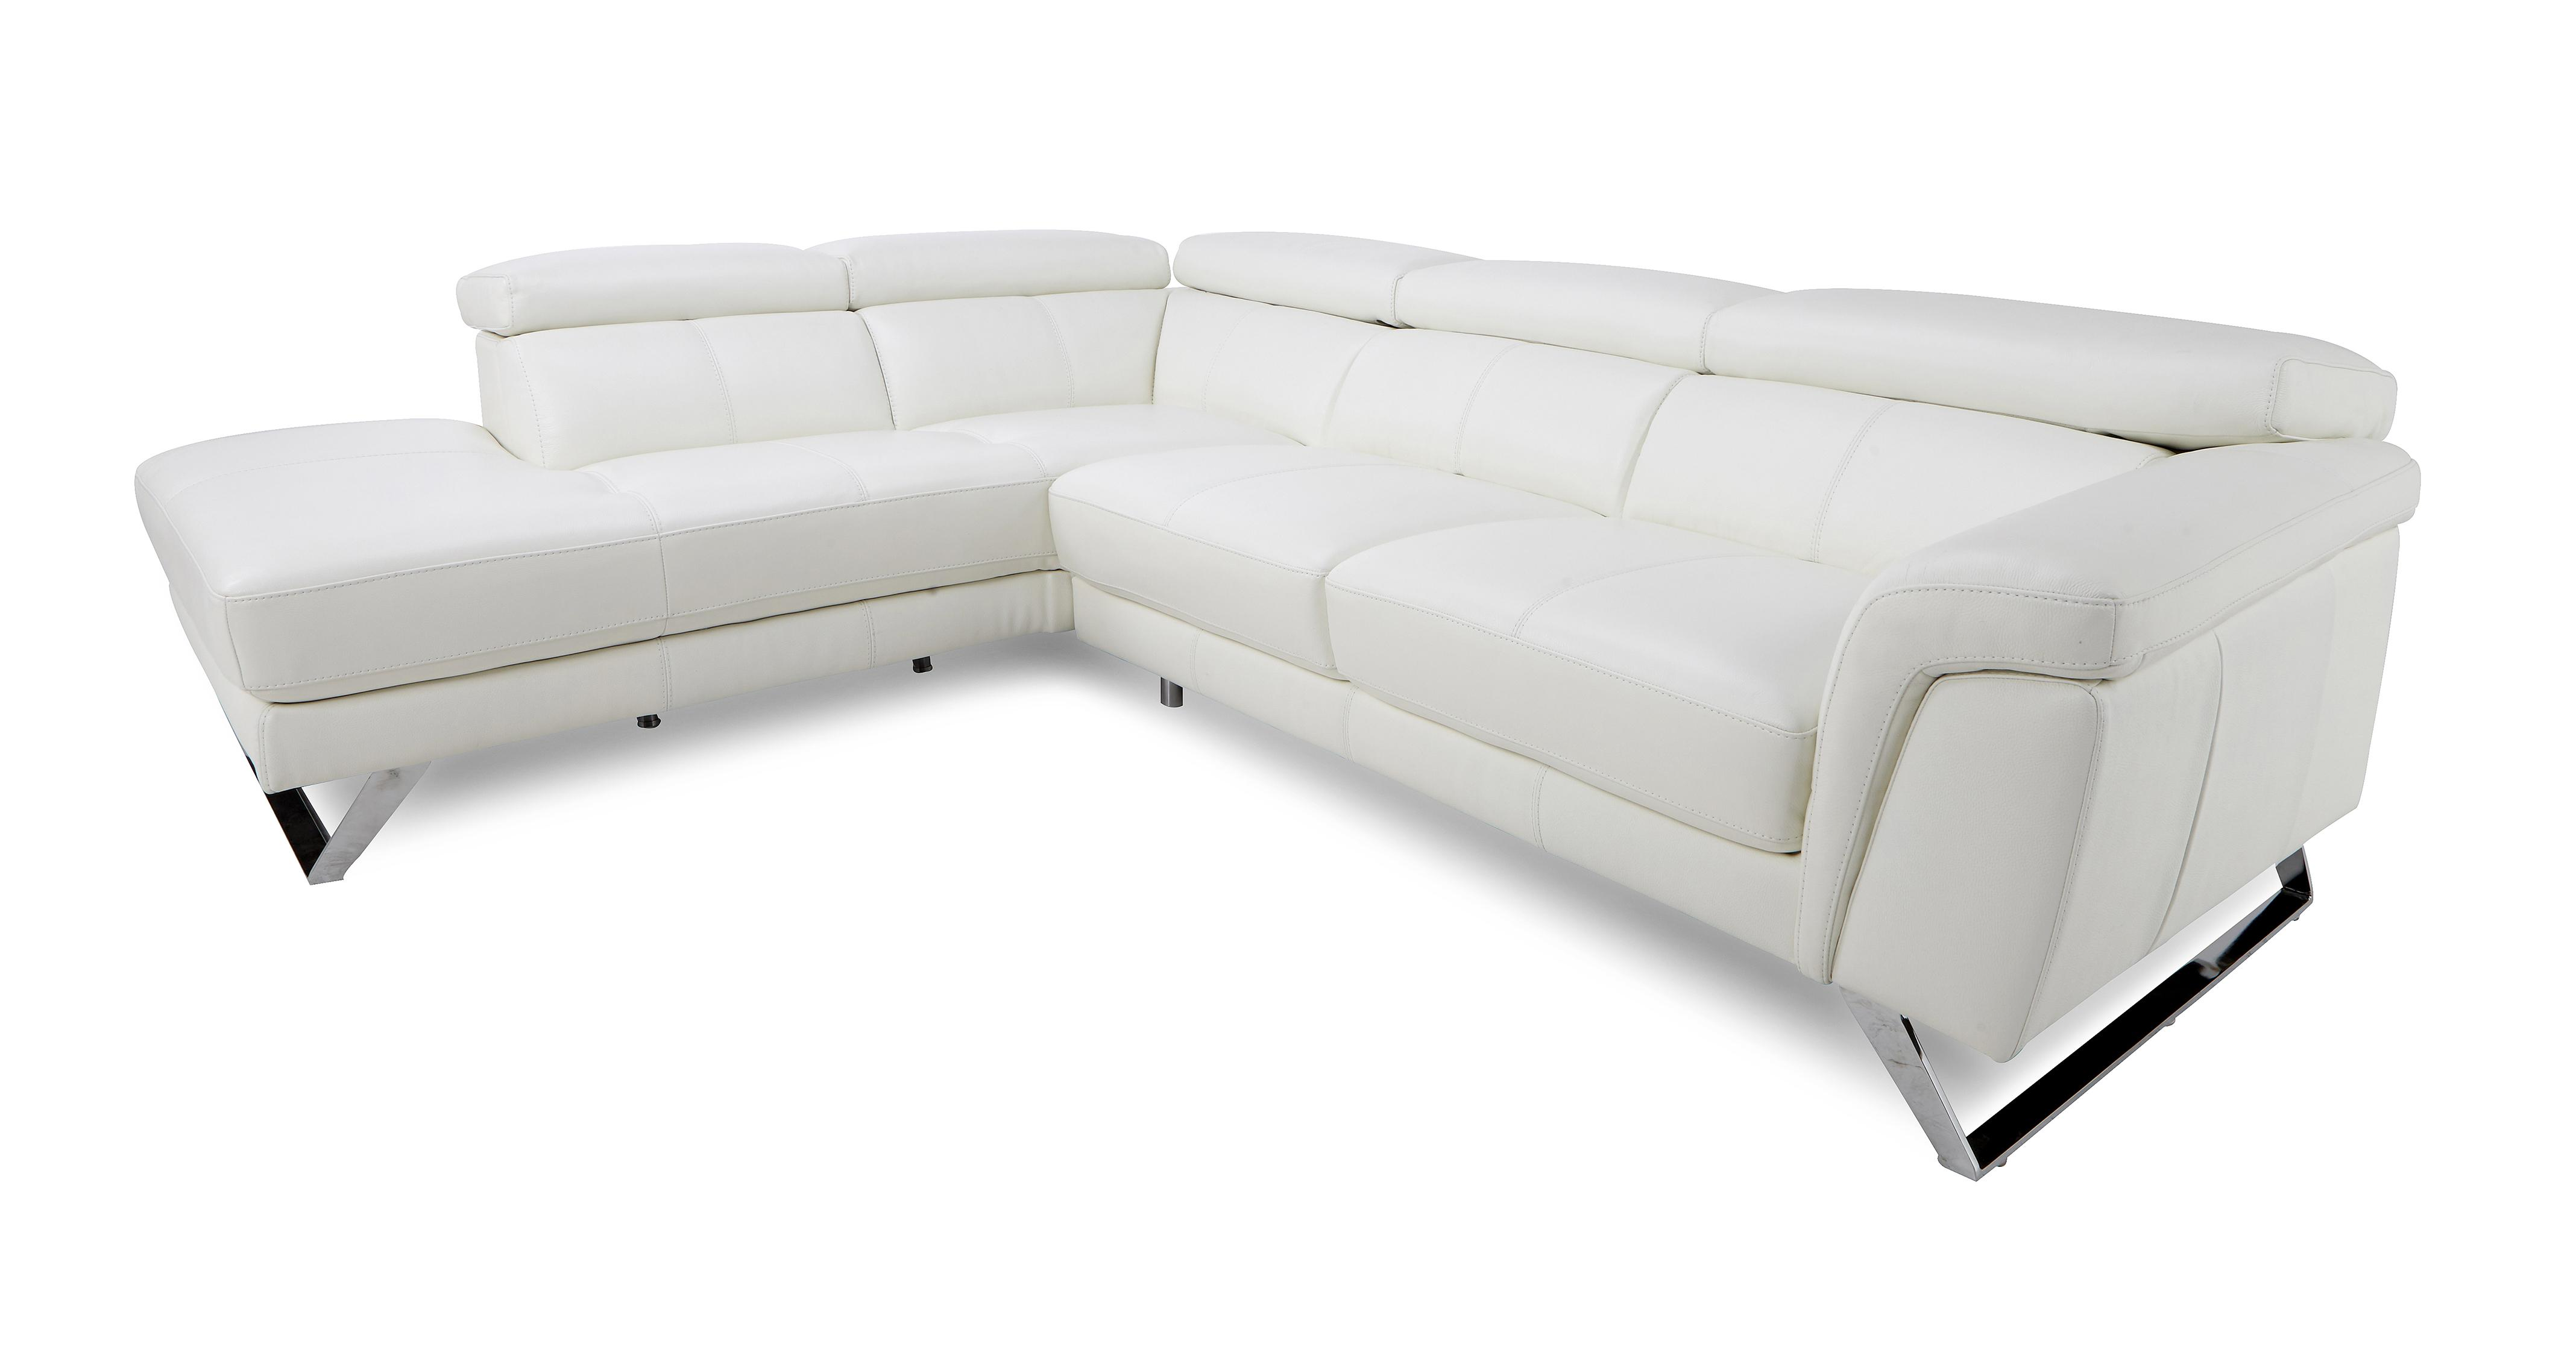 dfs california sofa dimensions 1d flip out bed order baci living room